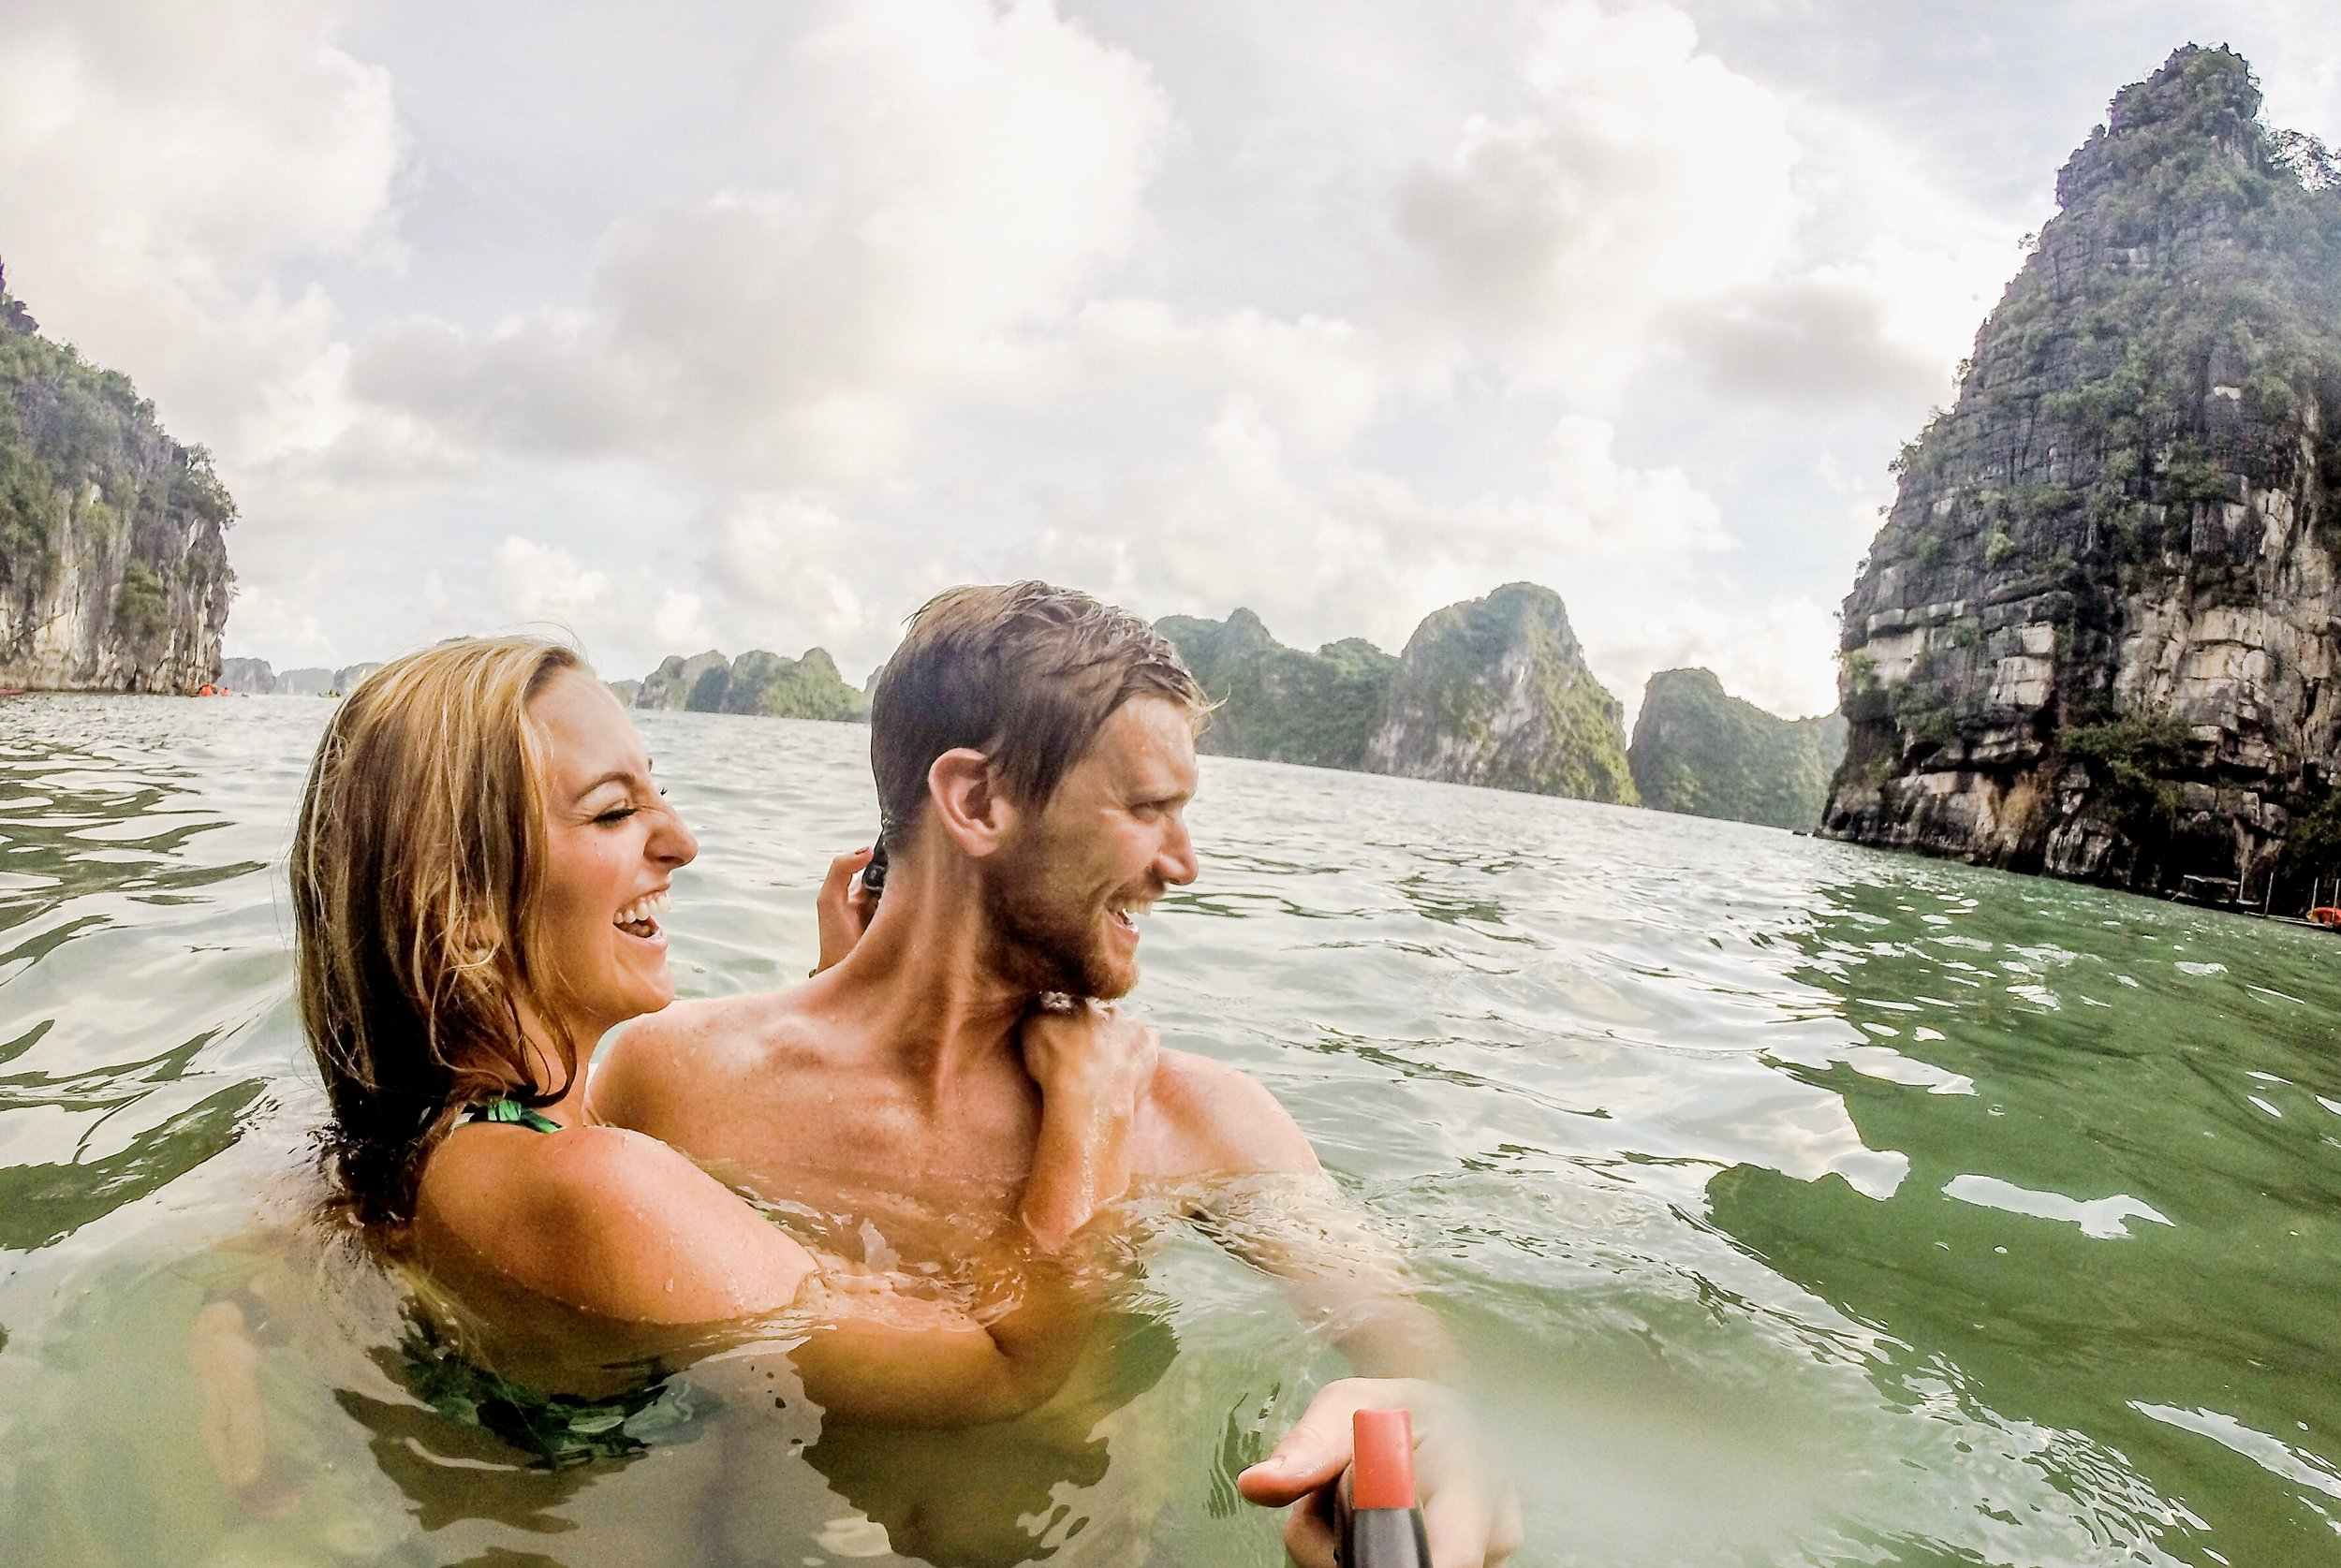 Taken with our GoPro and swivel stick in Ha Long Bay, Vietnam!